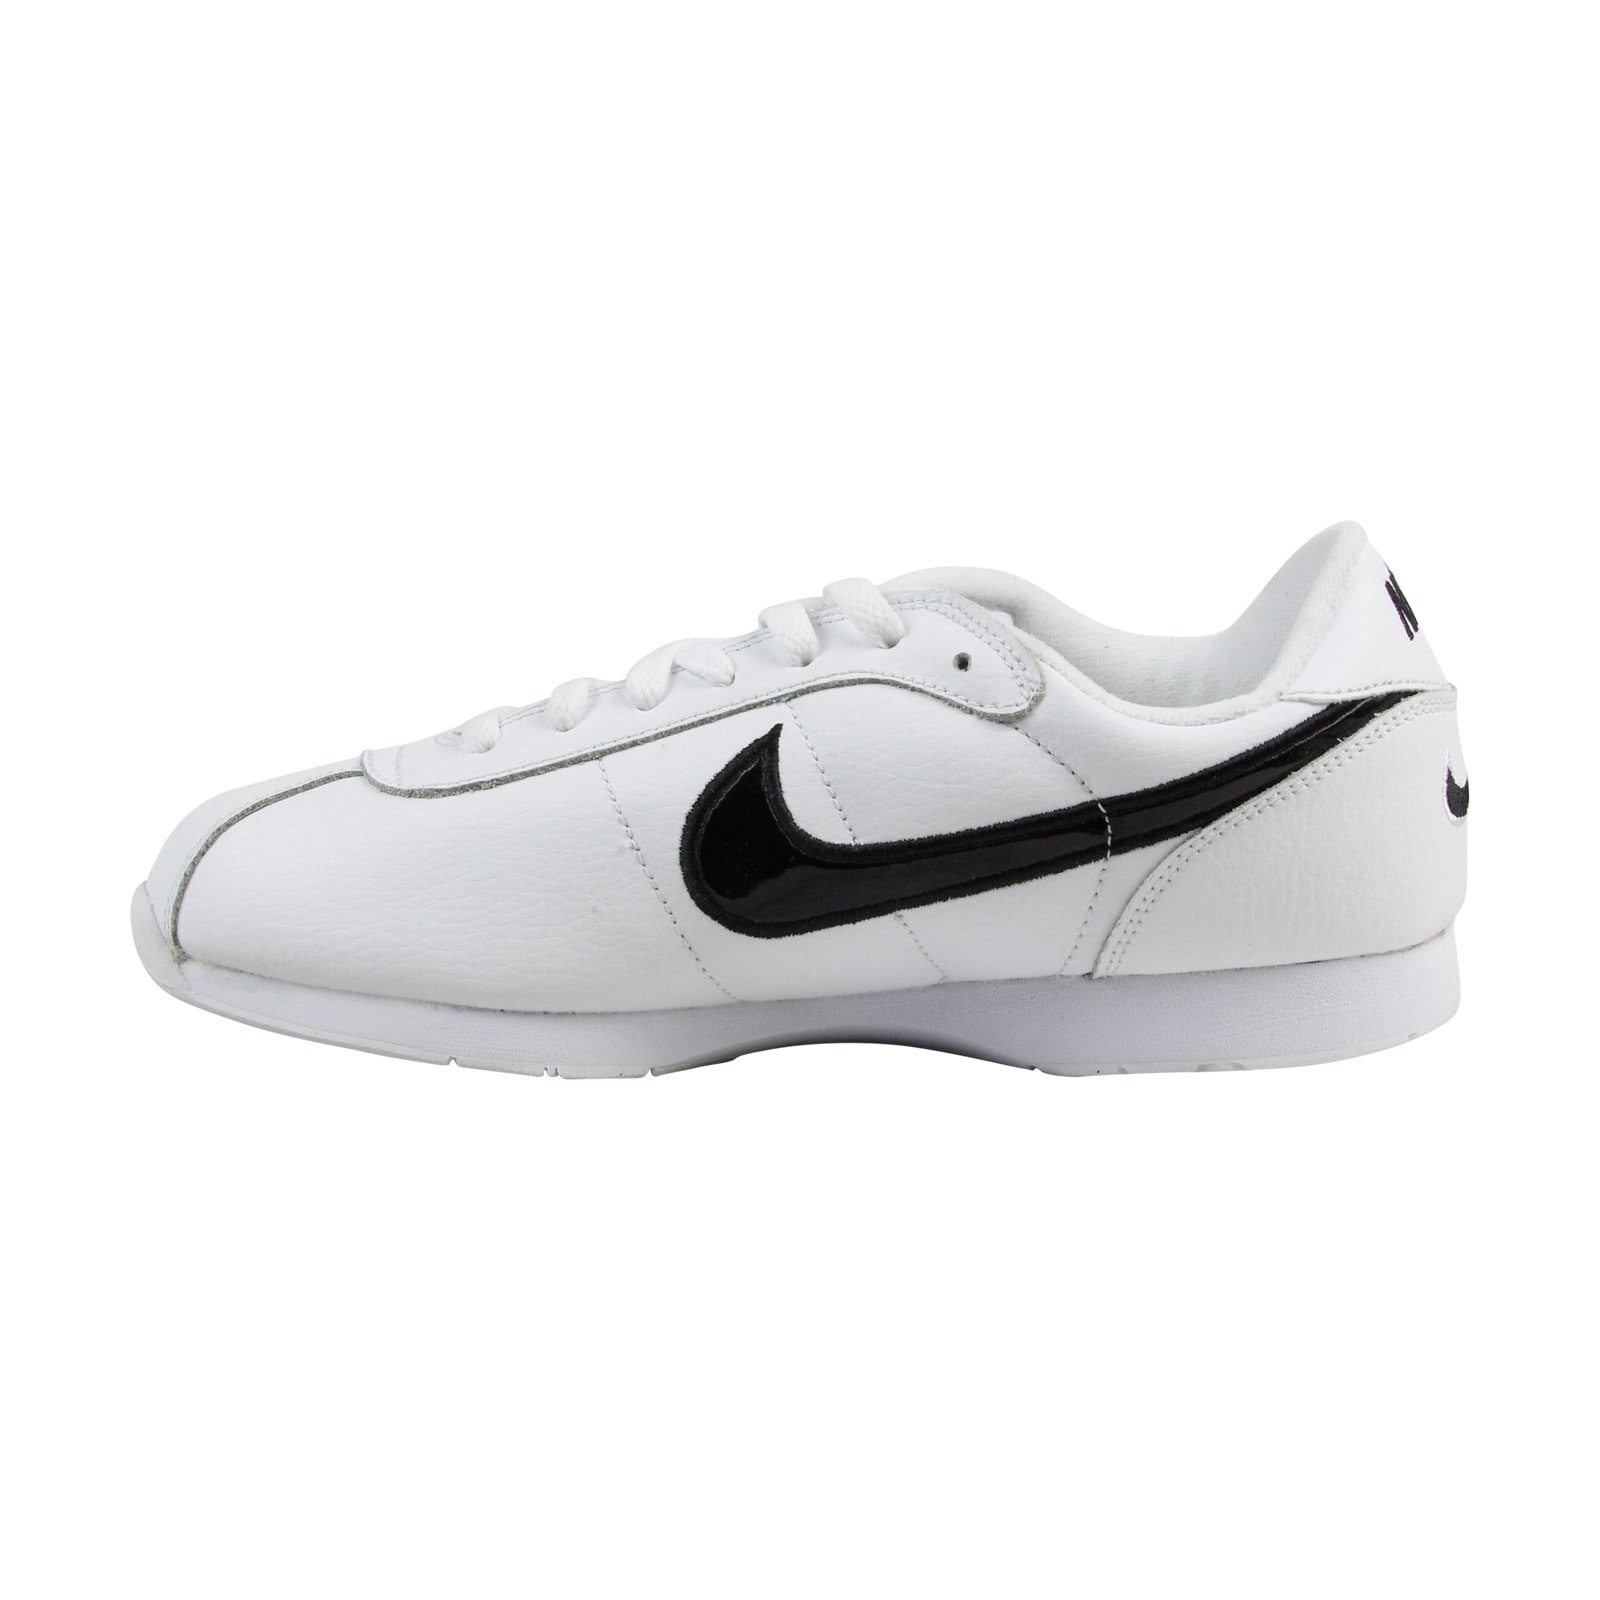 outlet store 9f269 748fc Shop Nike Stamina Mens White Leather Athletic Lace Up Running Shoes - Free  Shipping Today - Overstock - 18553176